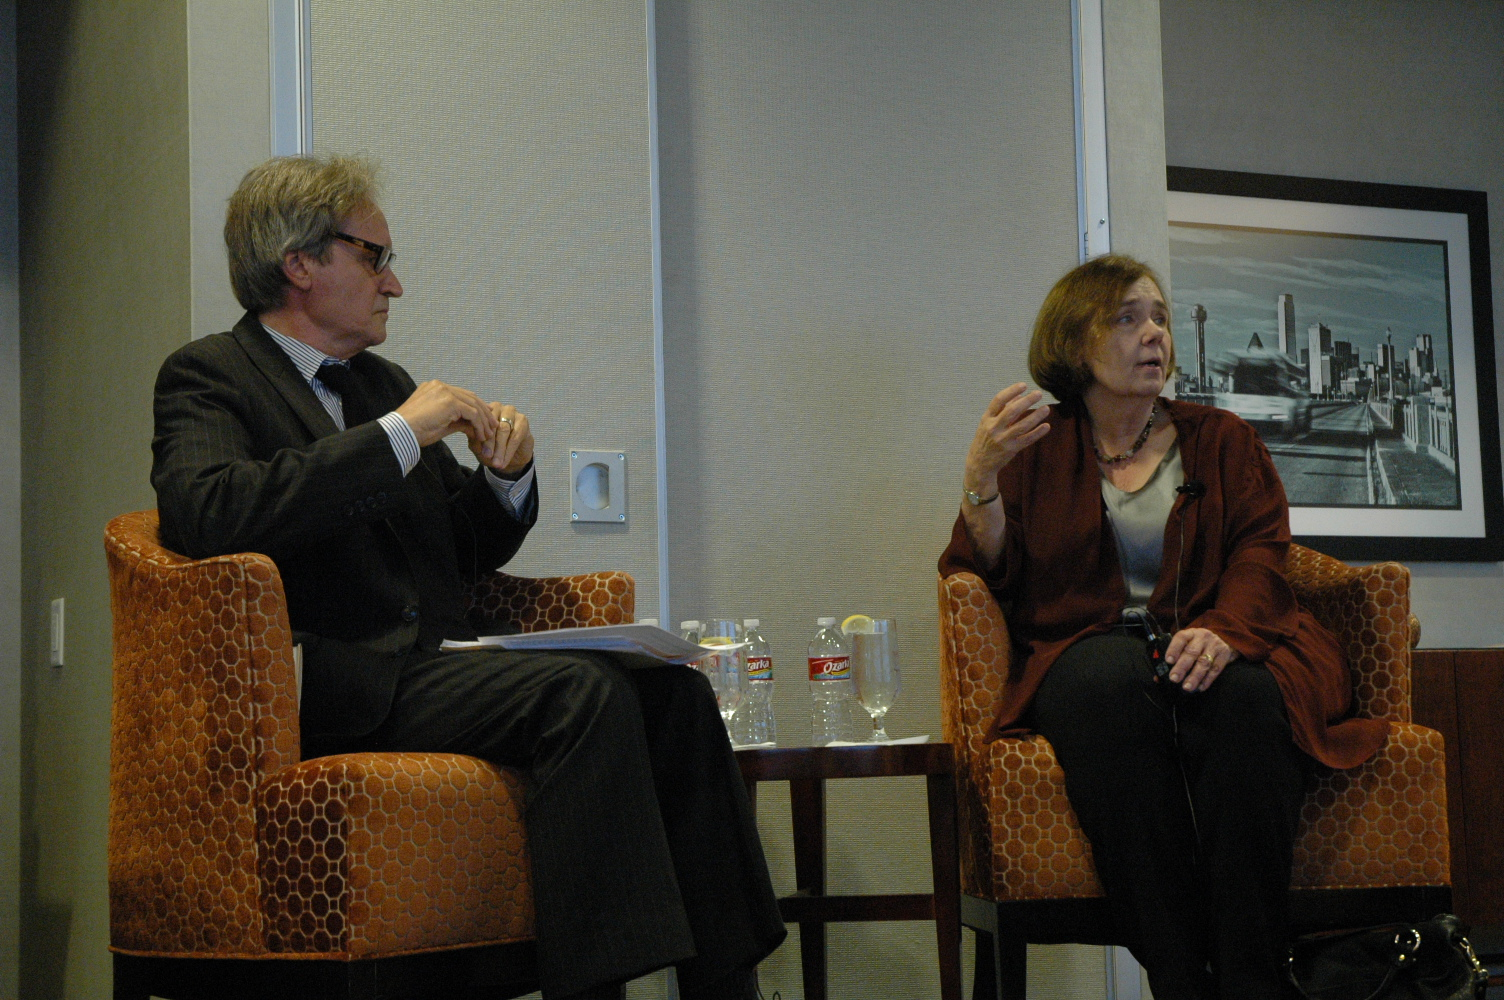 Gail Collins, right, endures the questions of Glenn Hunter with admirable patience and humor.